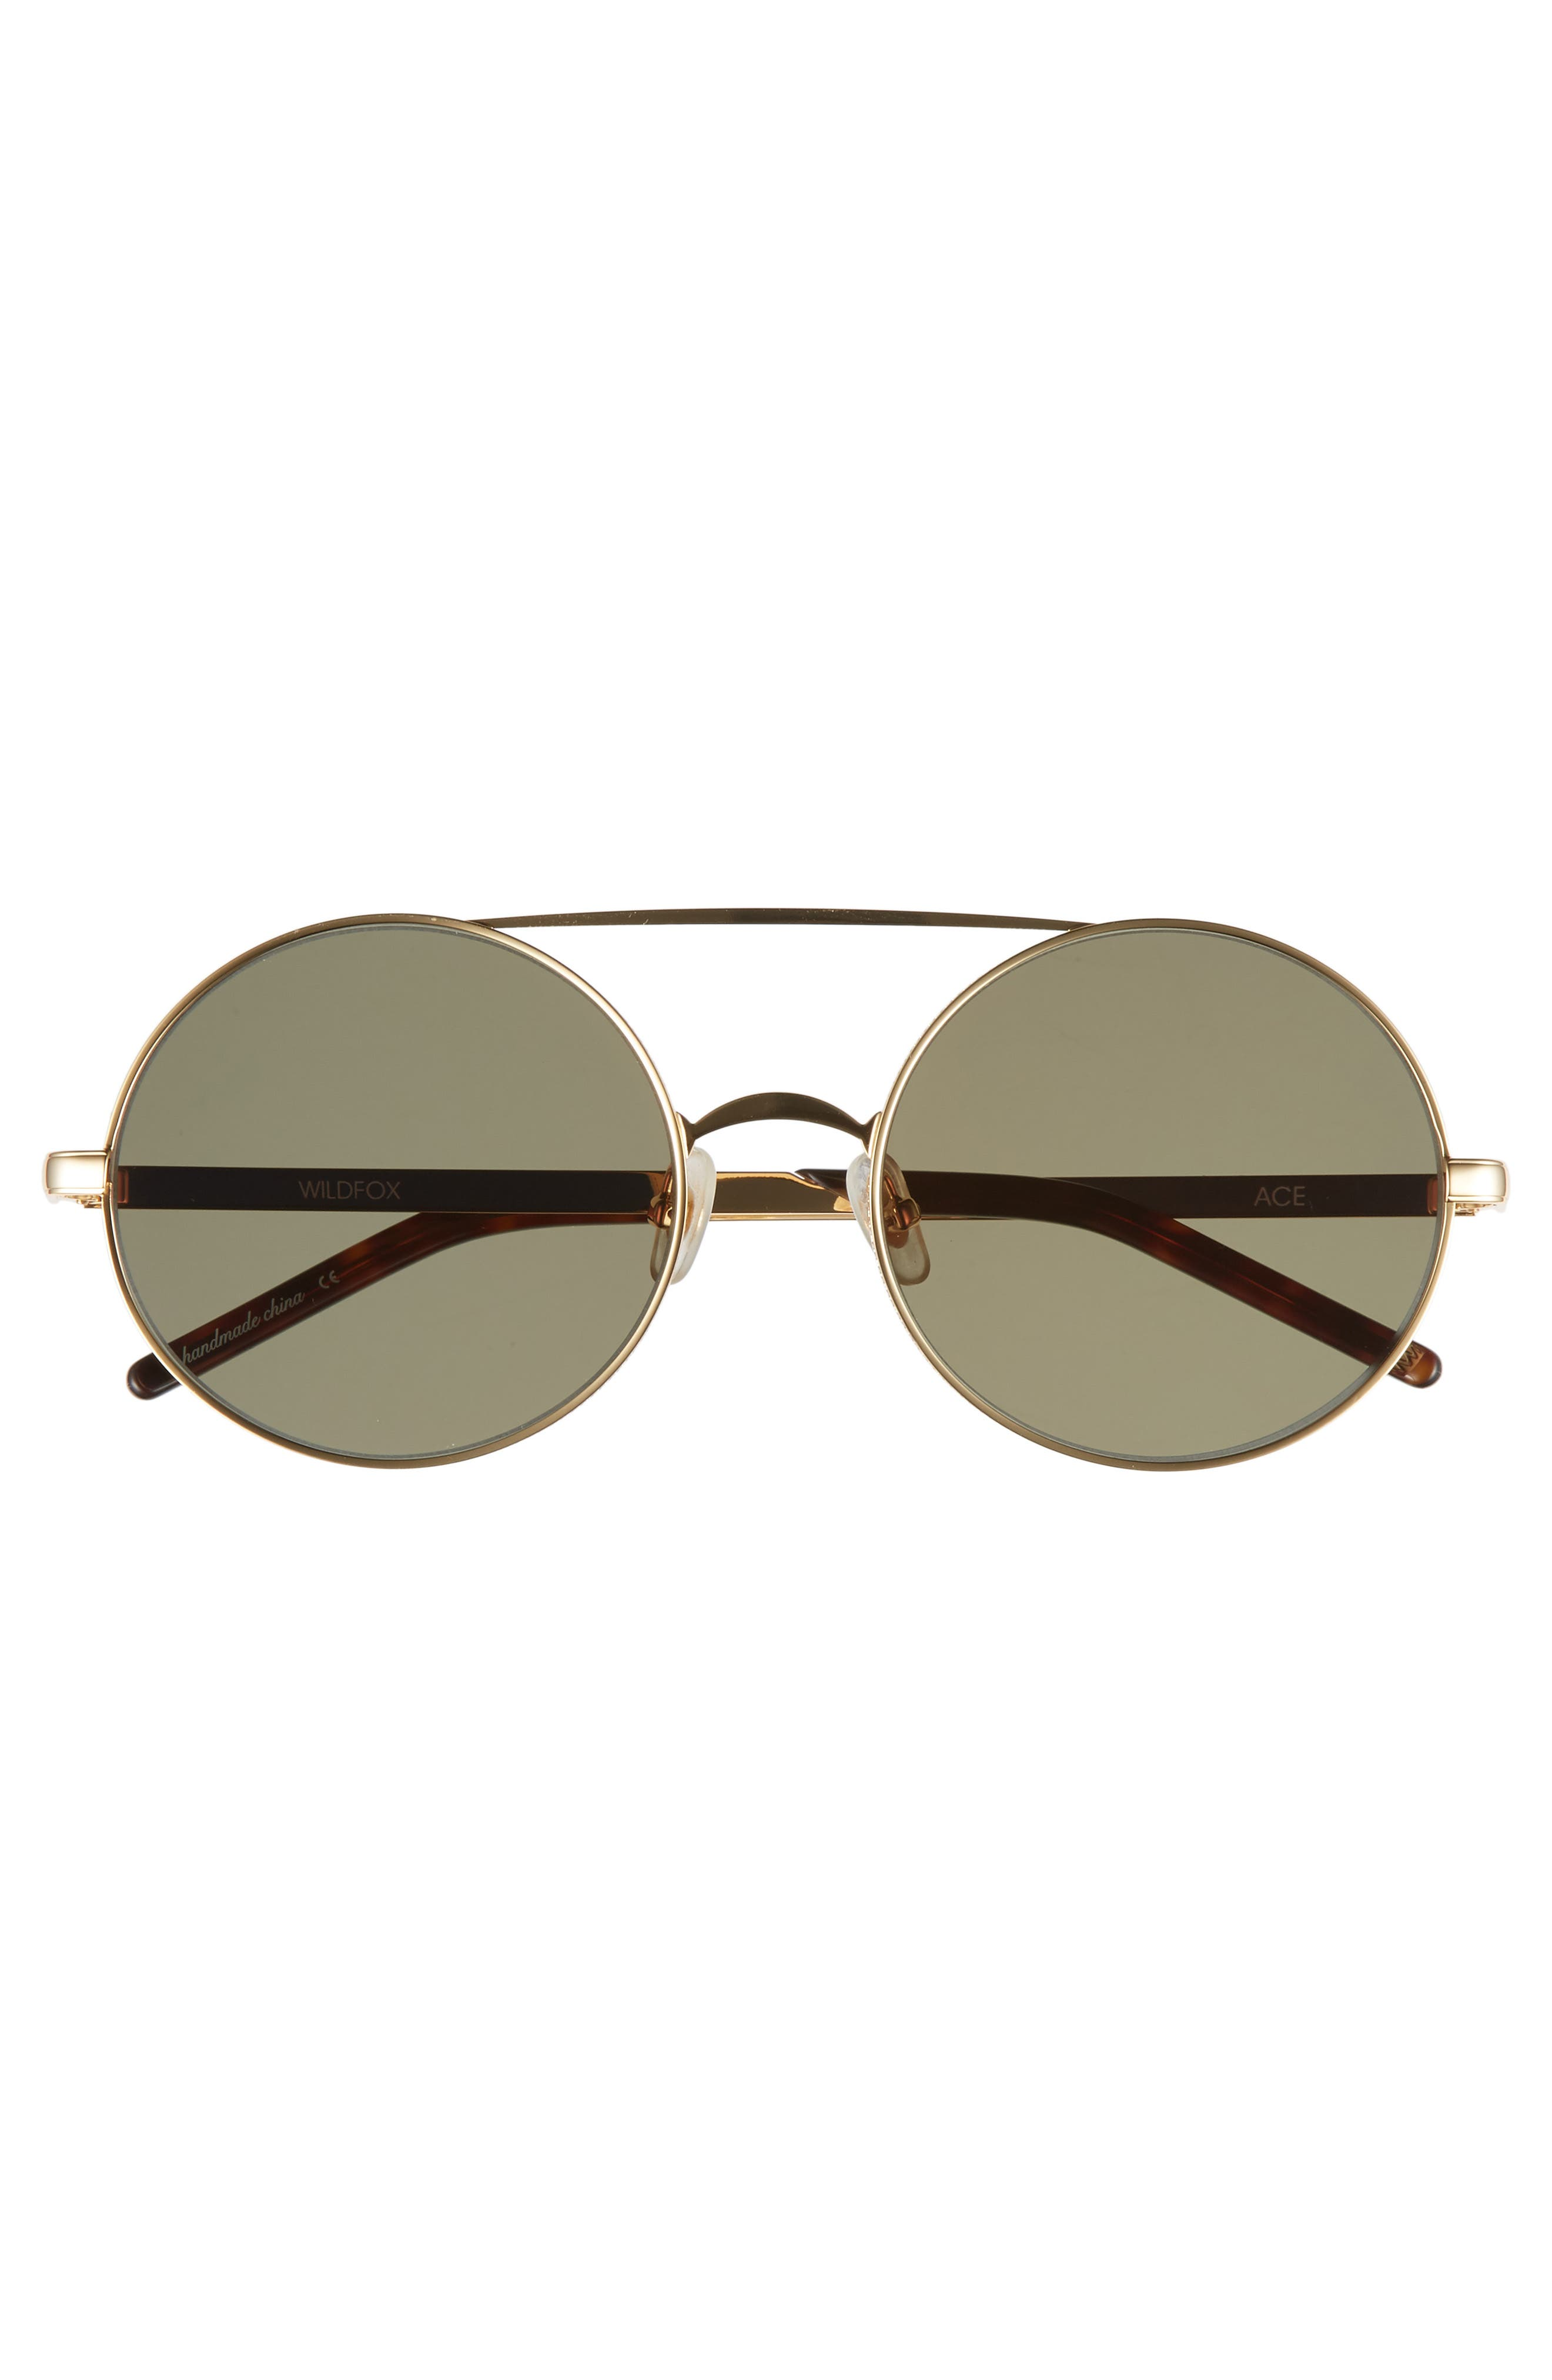 Ace 55mm Round Sunglasses,                             Alternate thumbnail 3, color,                             GOLD/ G 15 SOLID